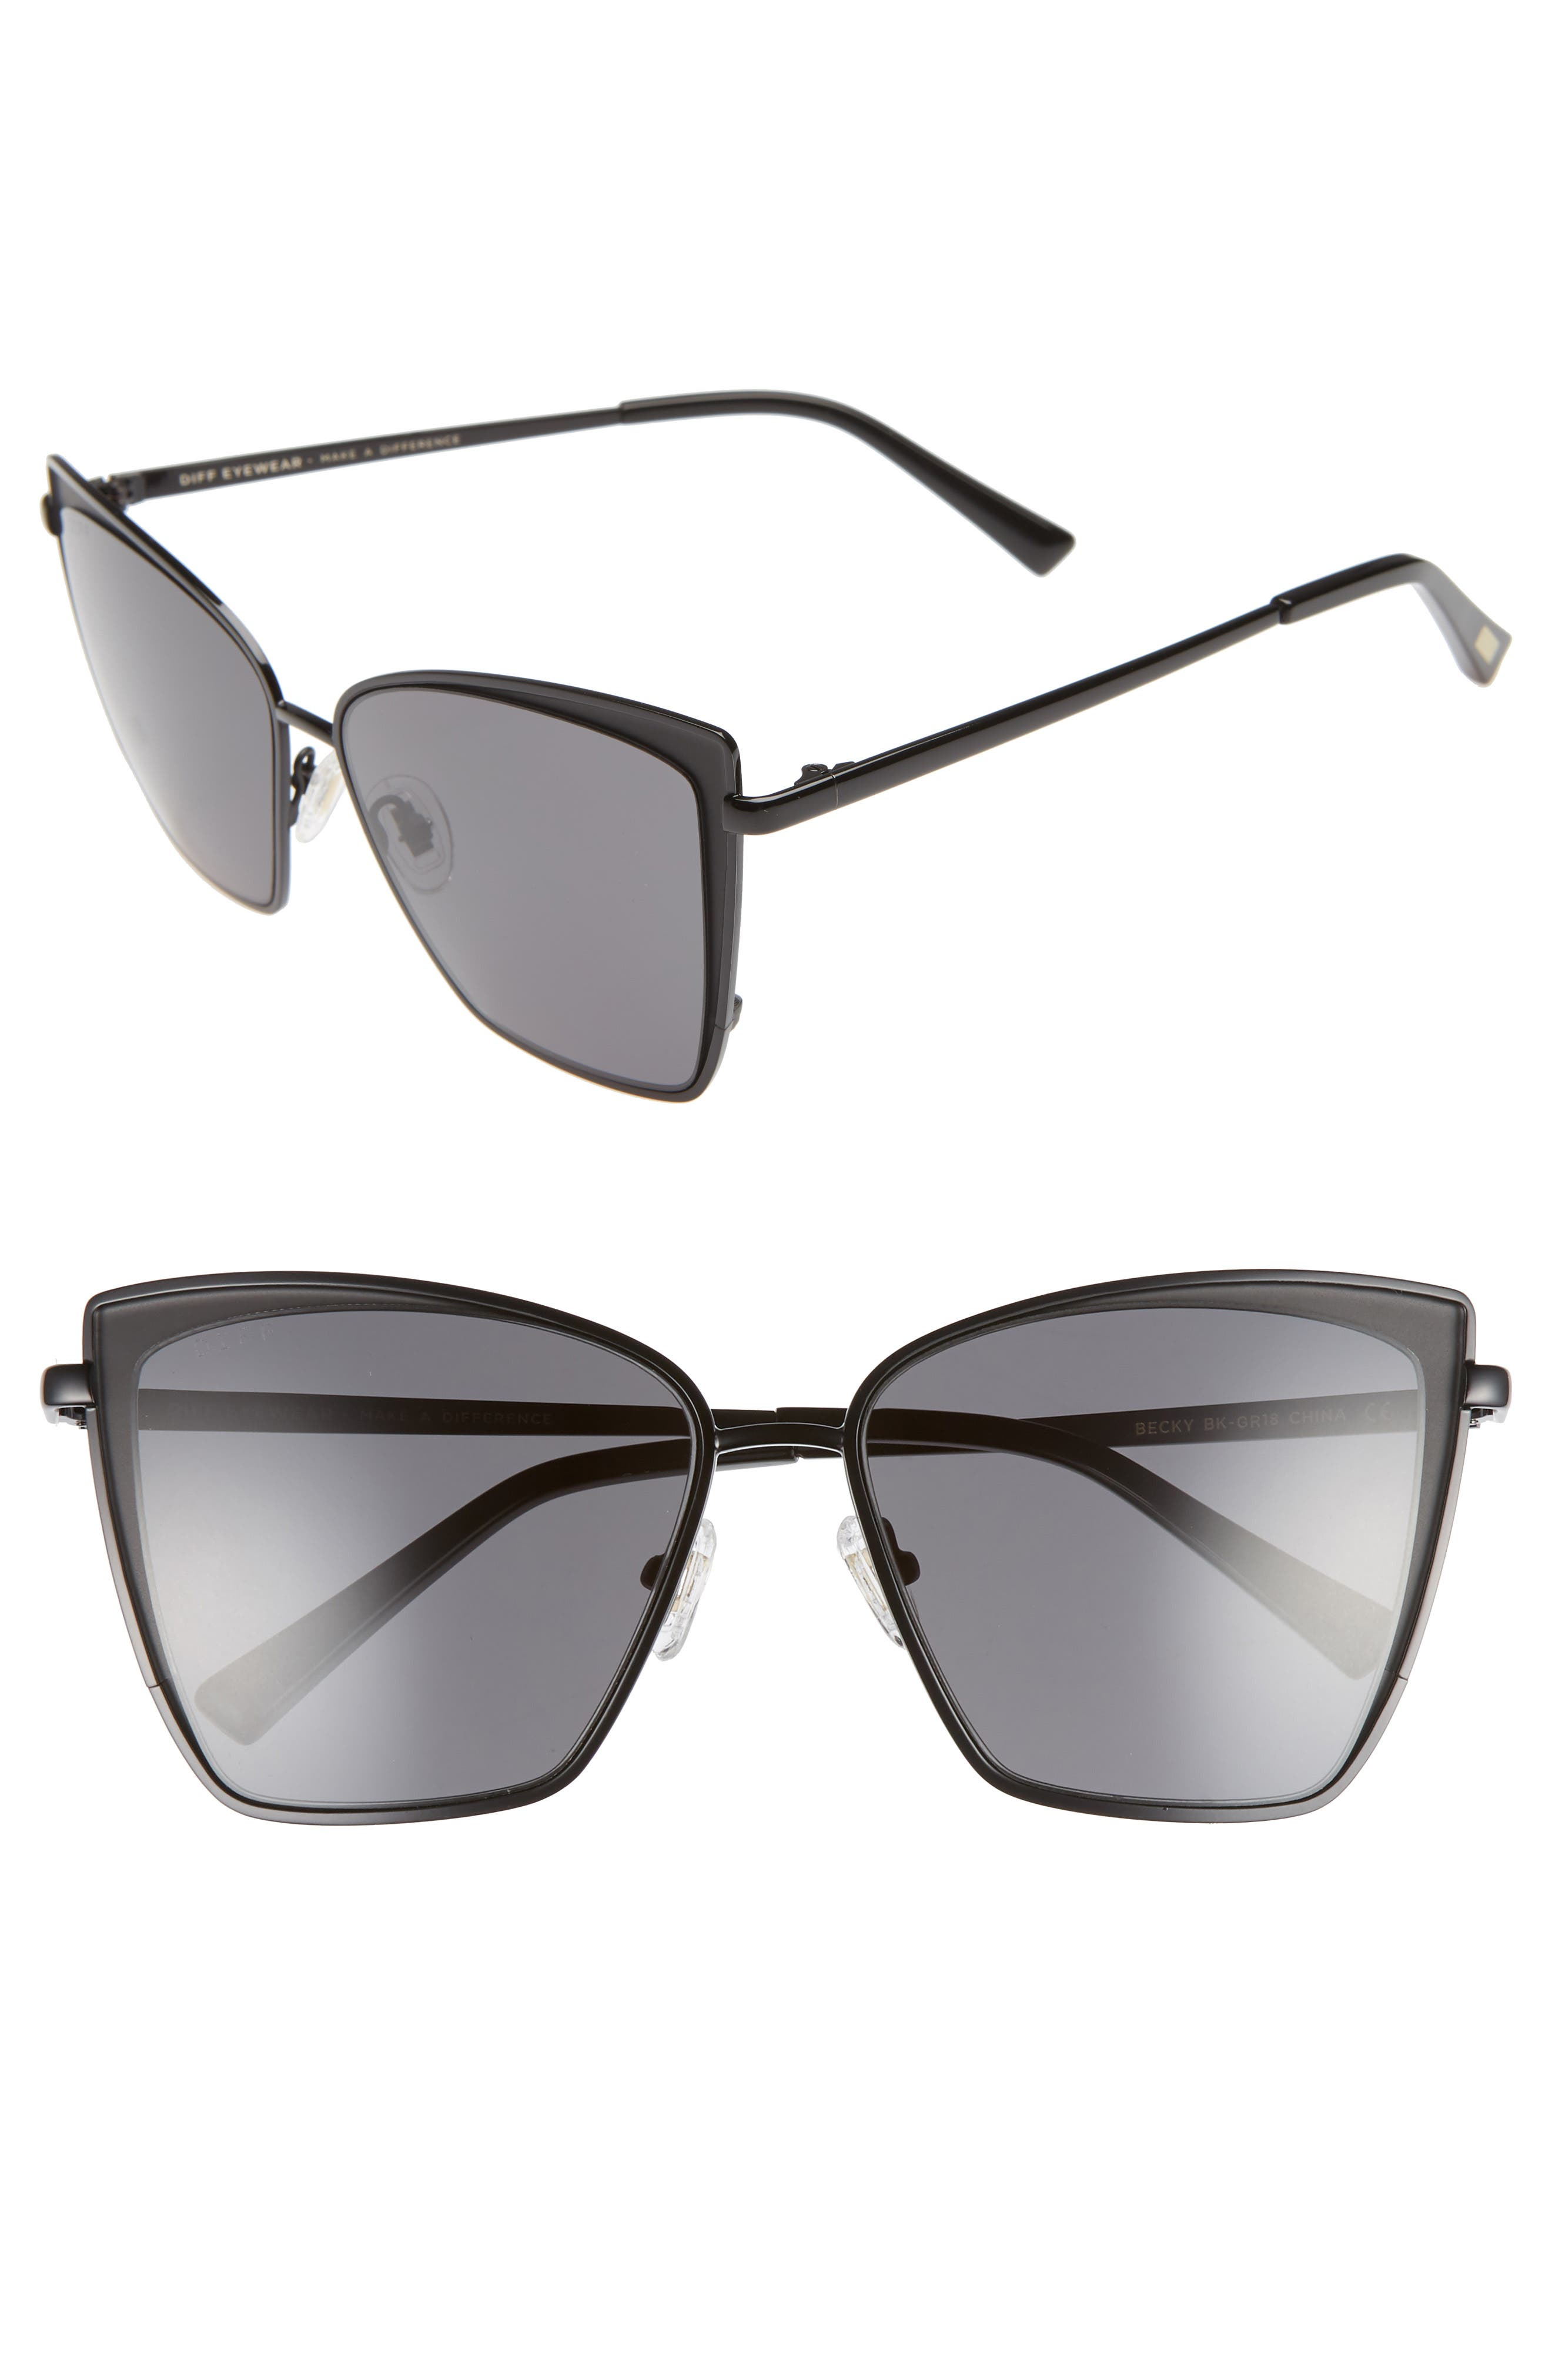 6bced72a811 DIFF Sunglasses for Women